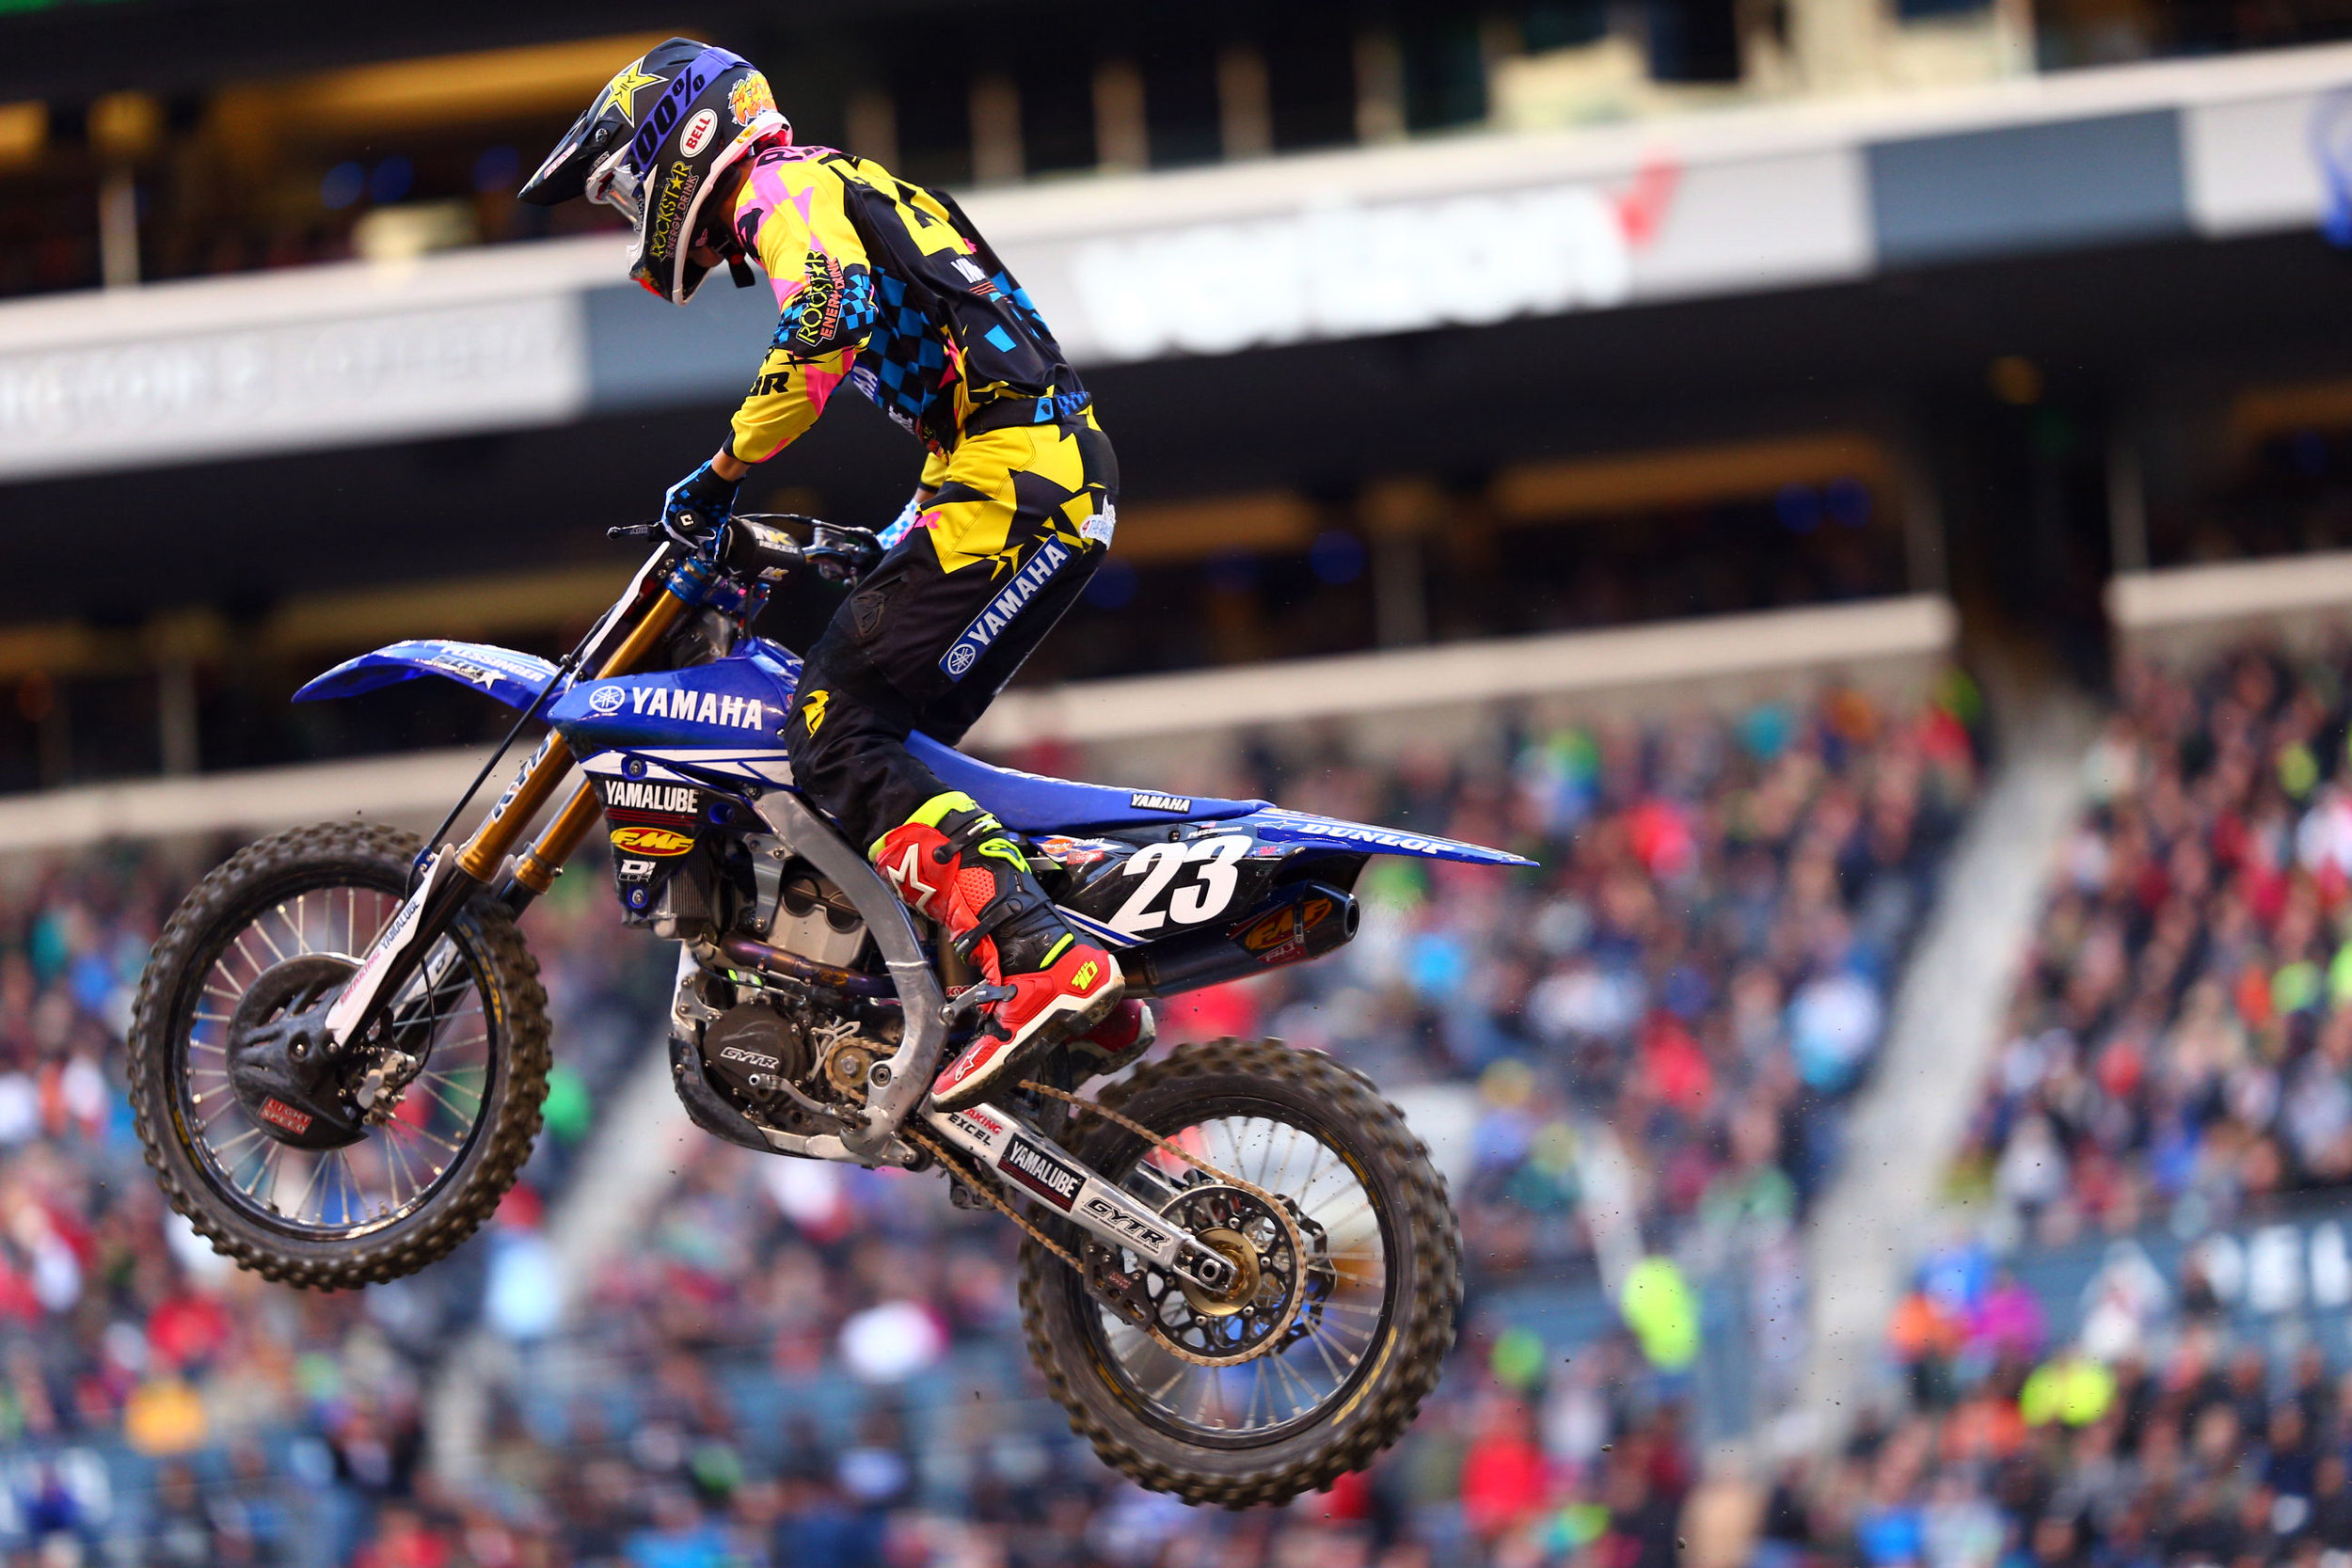 plessinger_seattle_2017_april8.jpg